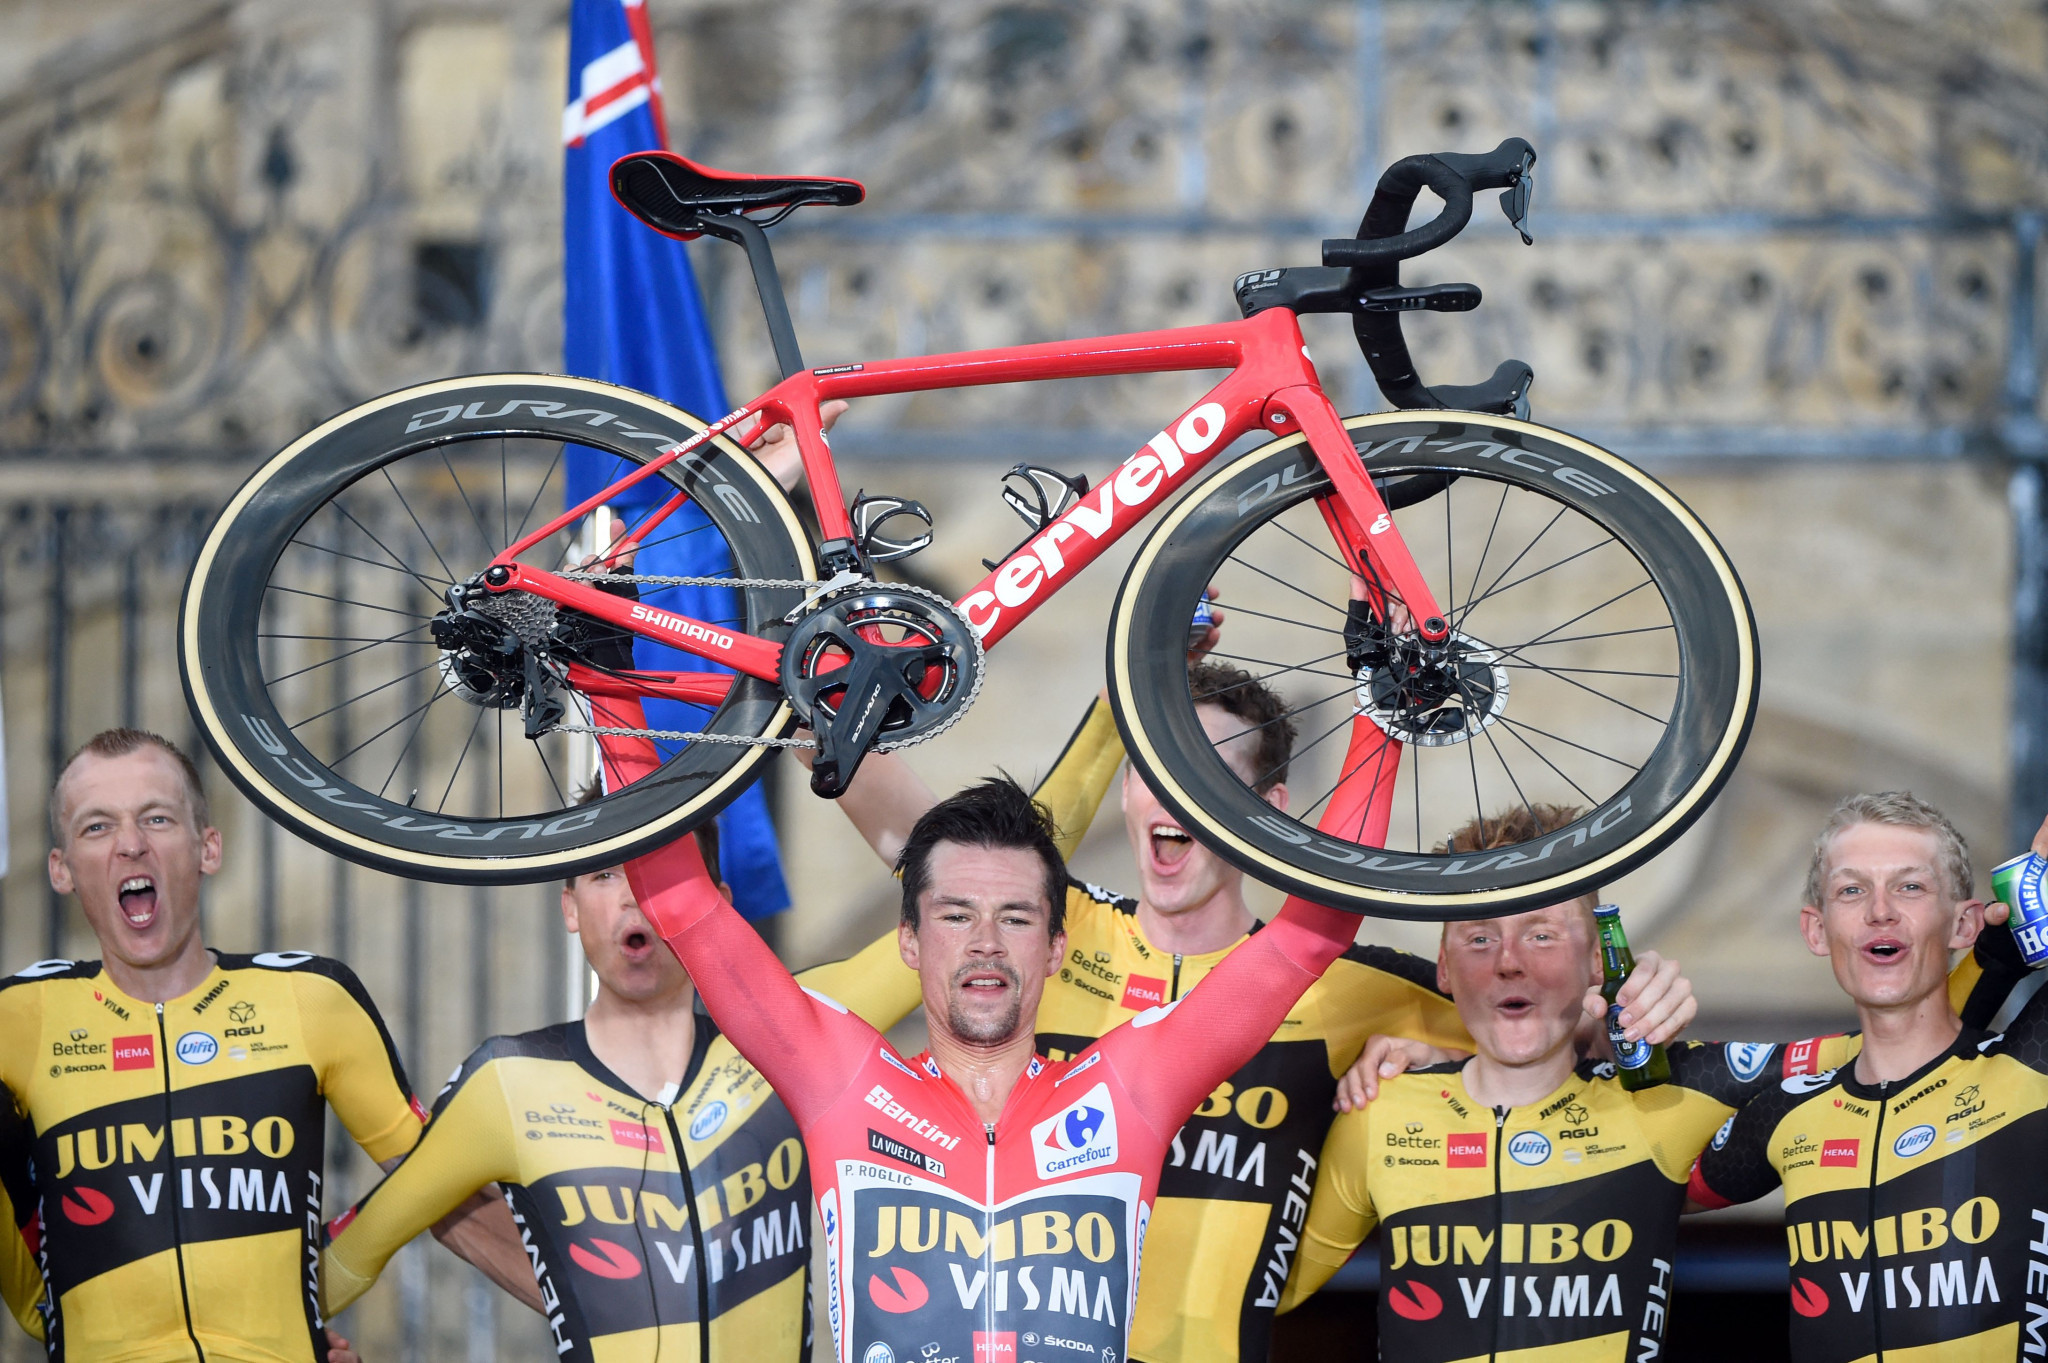 Dates confirmed for 2022 Vuelta a España and details of Dutch start revealed